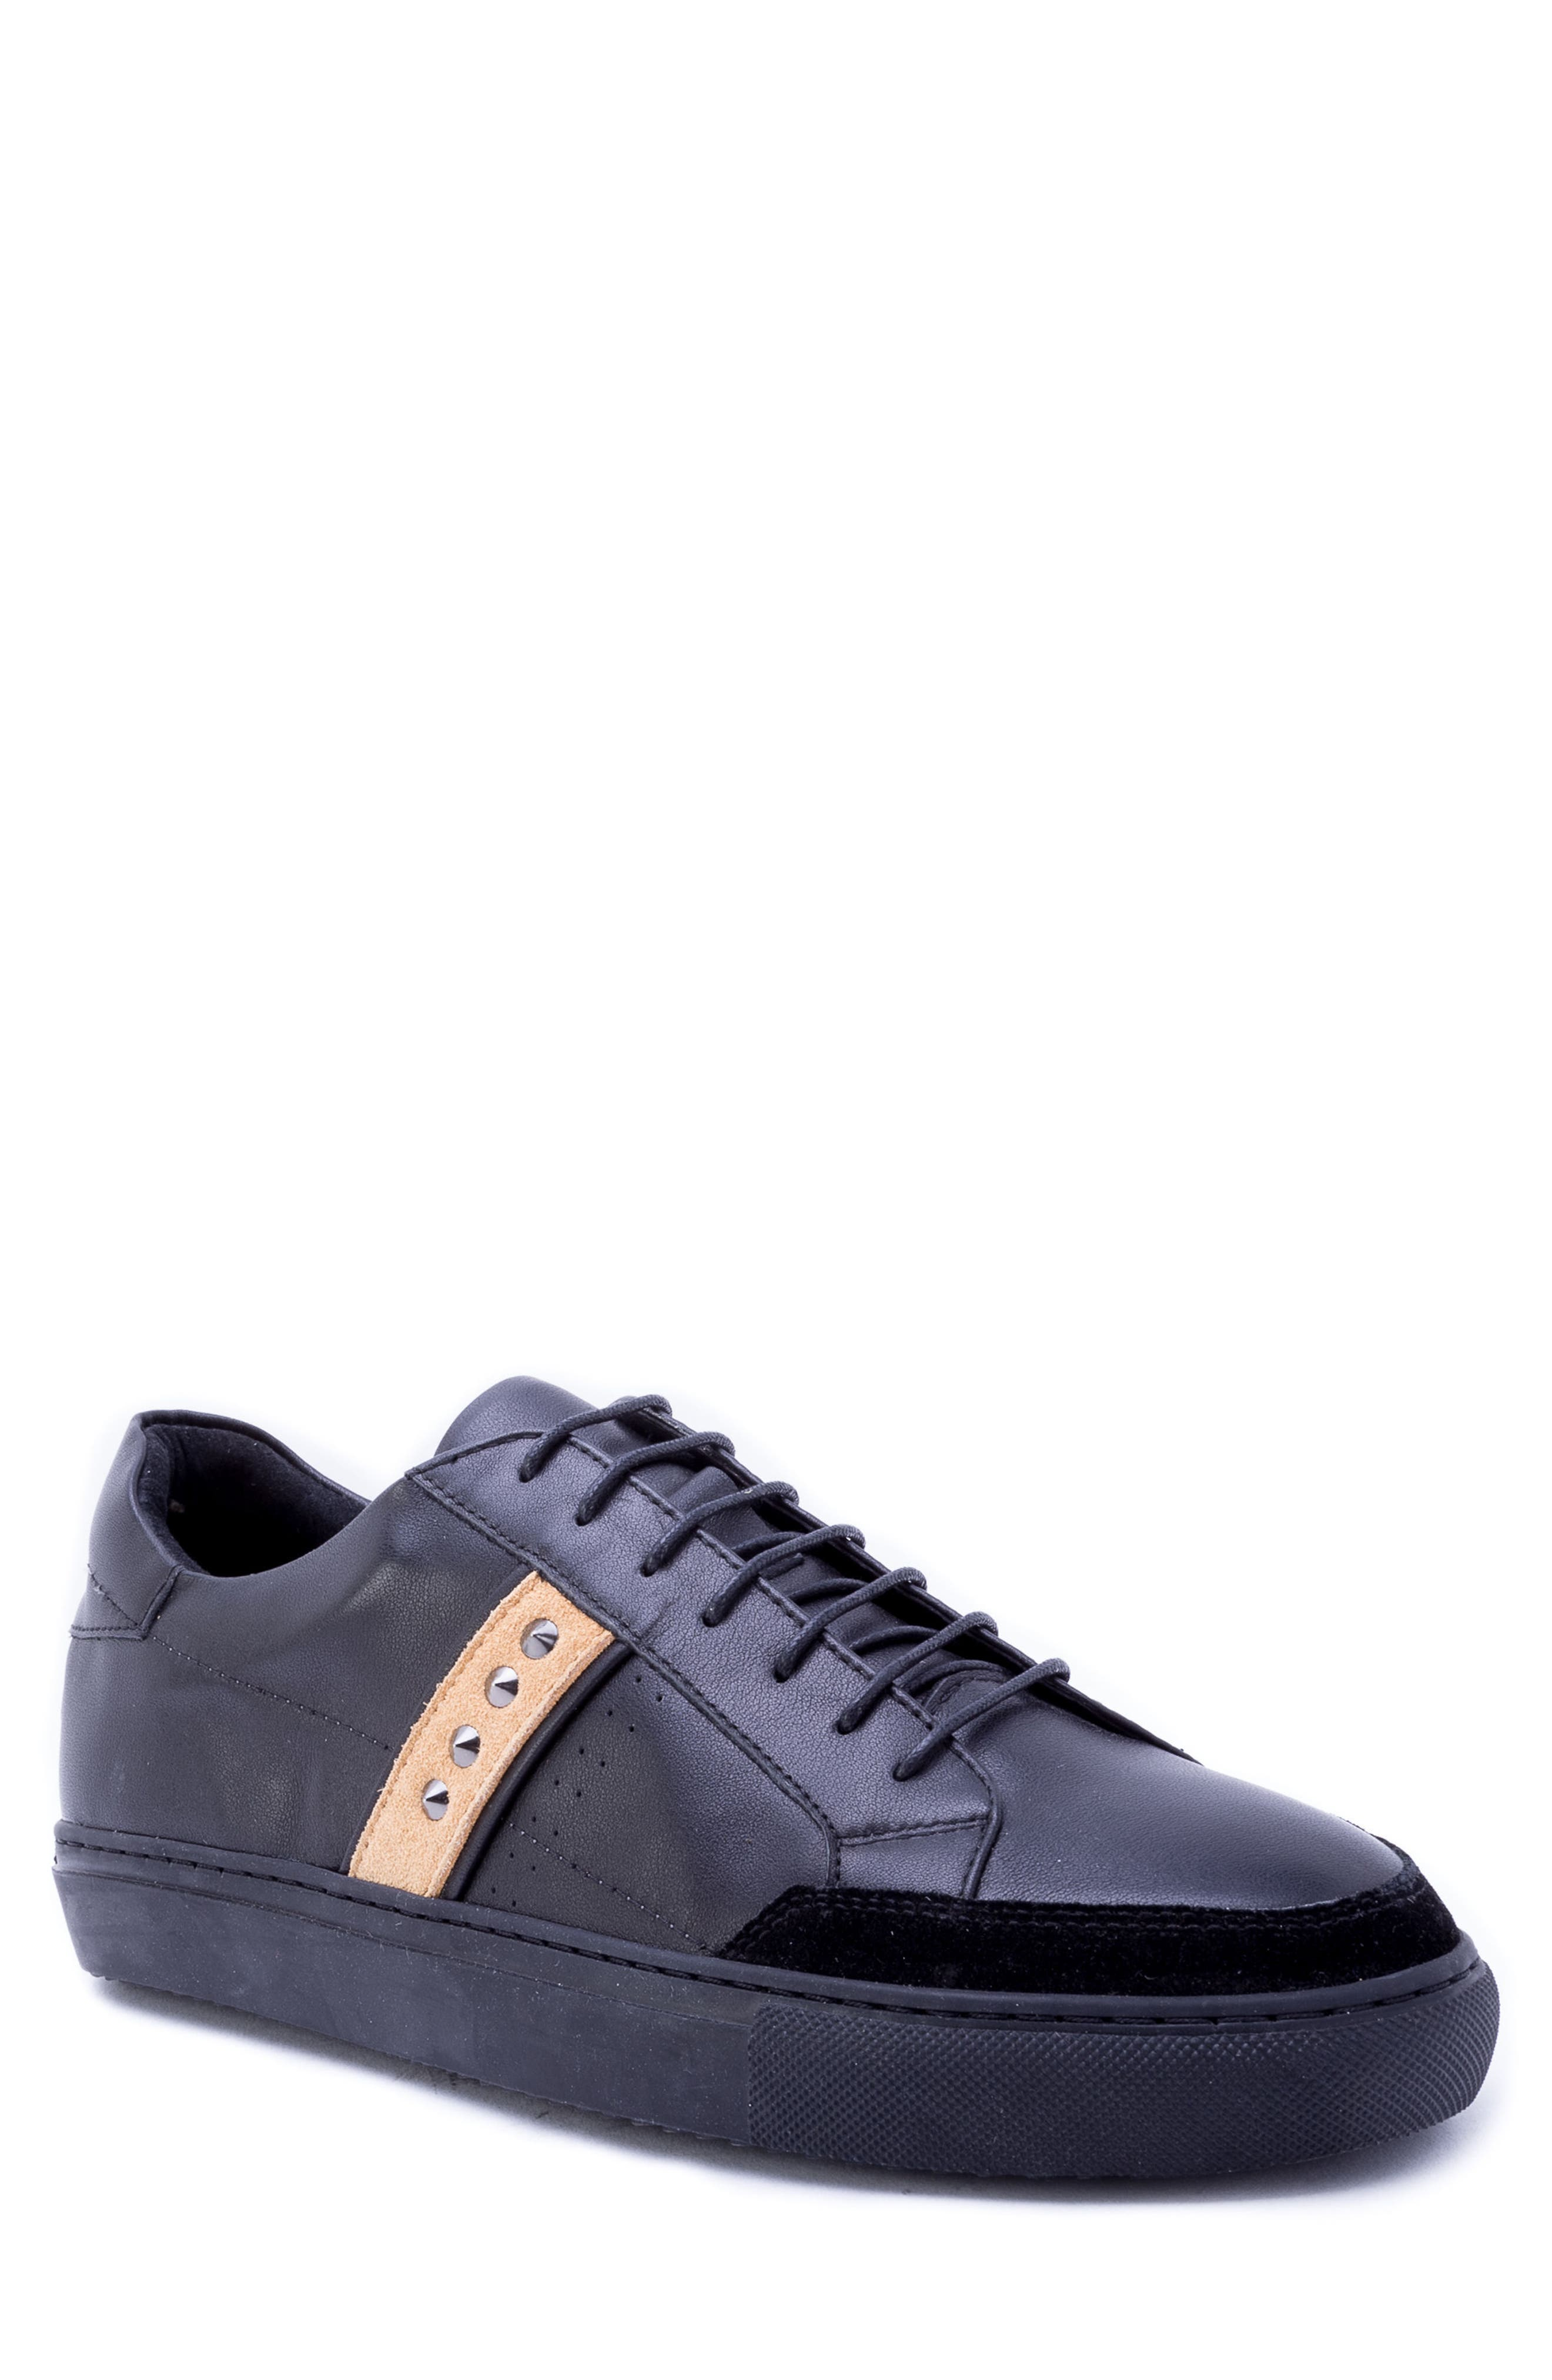 Connery Sneaker,                         Main,                         color, BLACK LEATHER